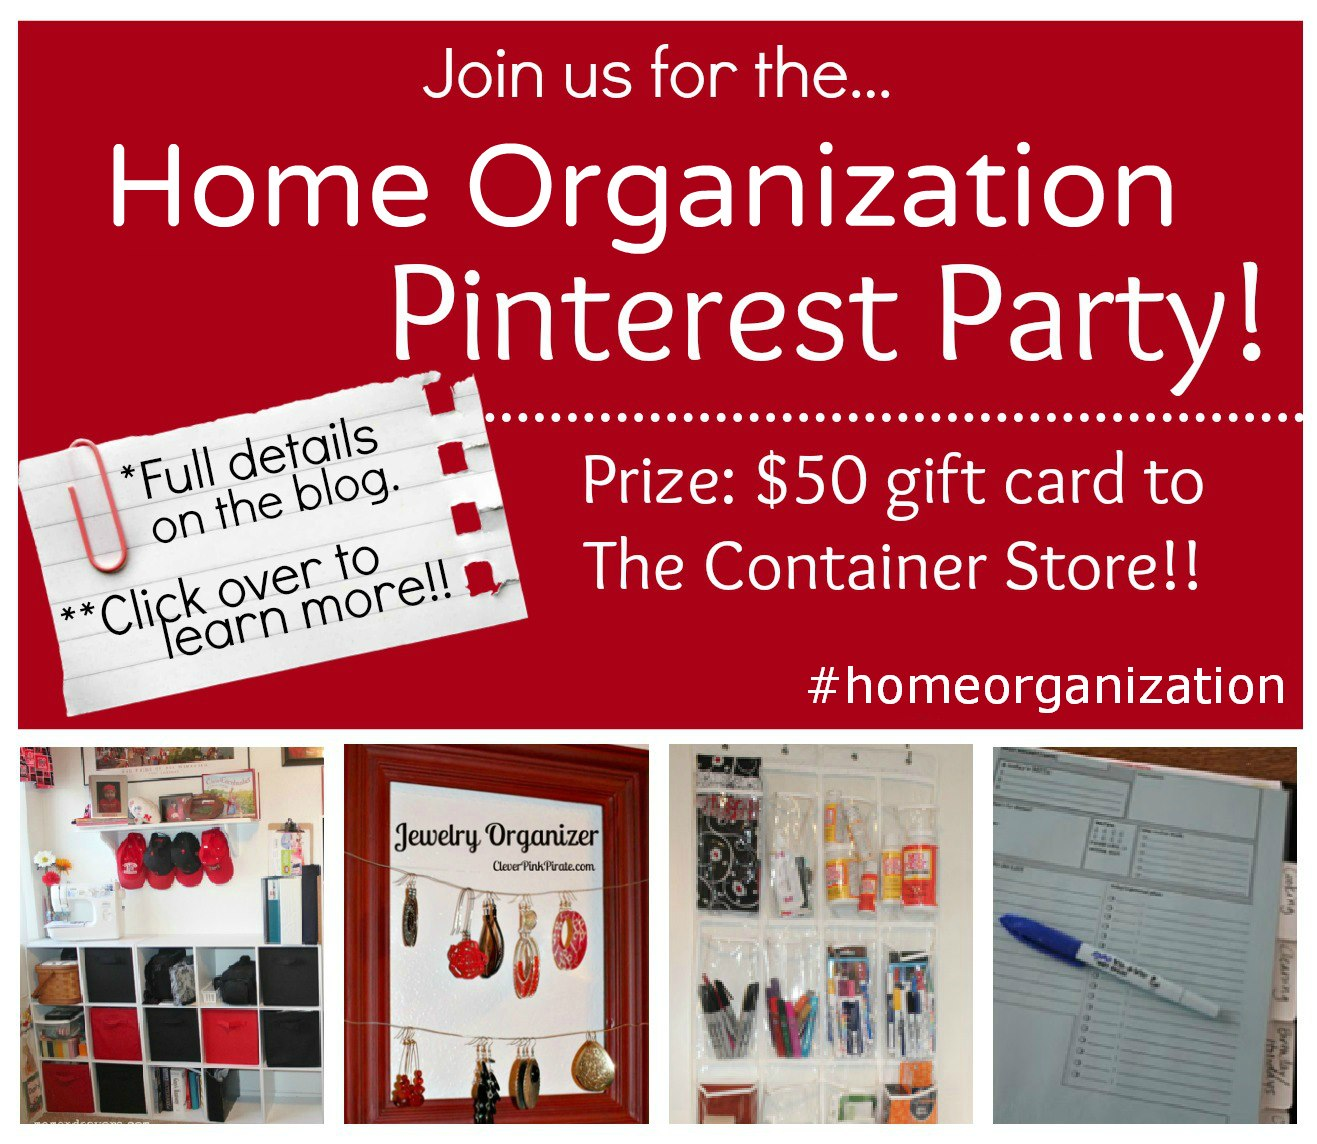 Join us for lots of Organization, Pinterest Party style #homeorganization #giveaway